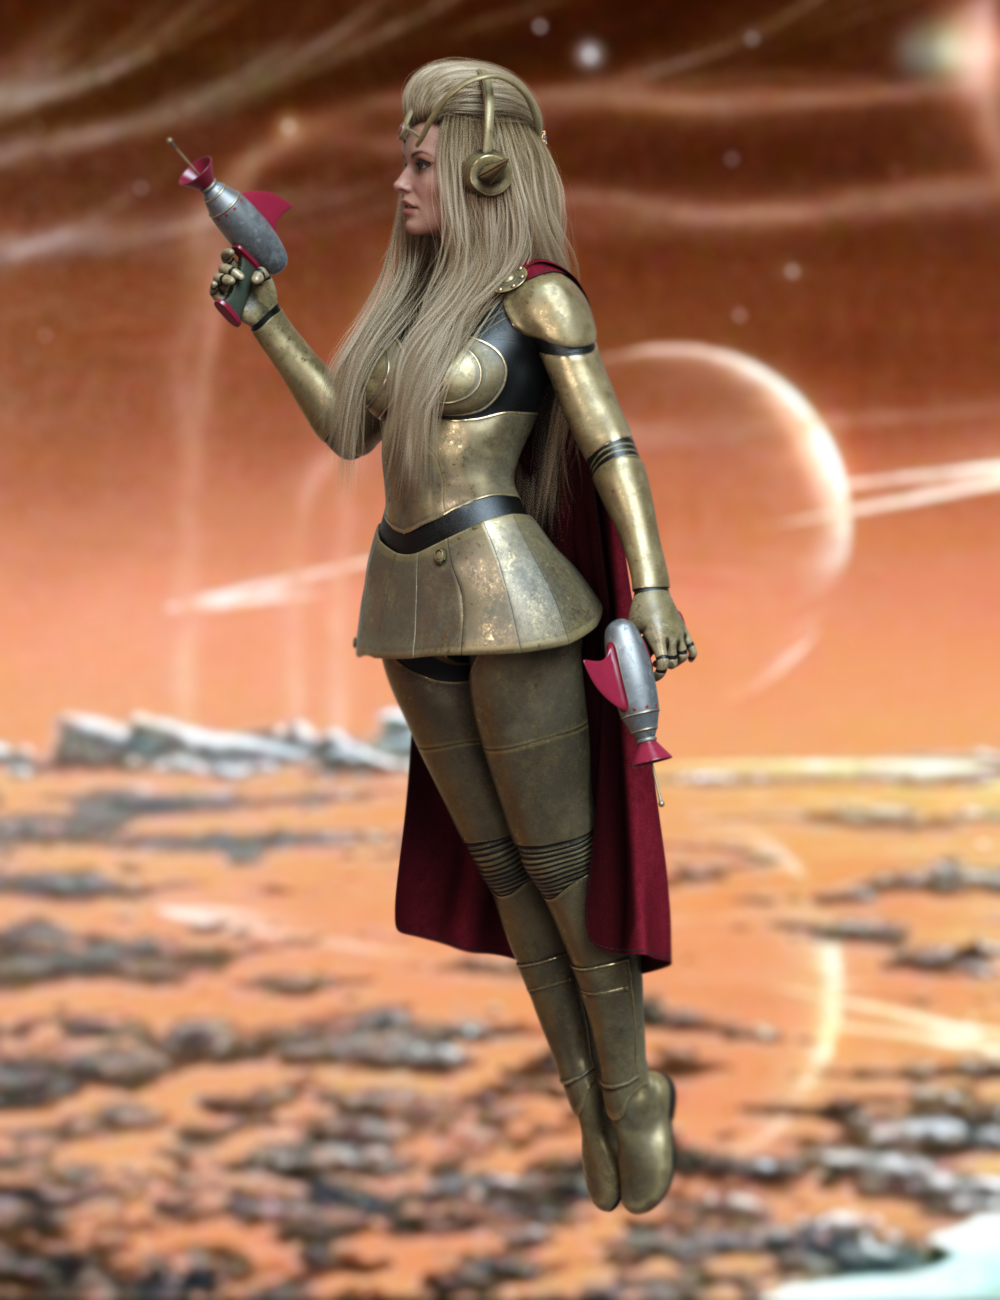 Retro Sci Fi Poses for Genesis 8 and 8.1 Females by: Ensary, 3D Models by Daz 3D